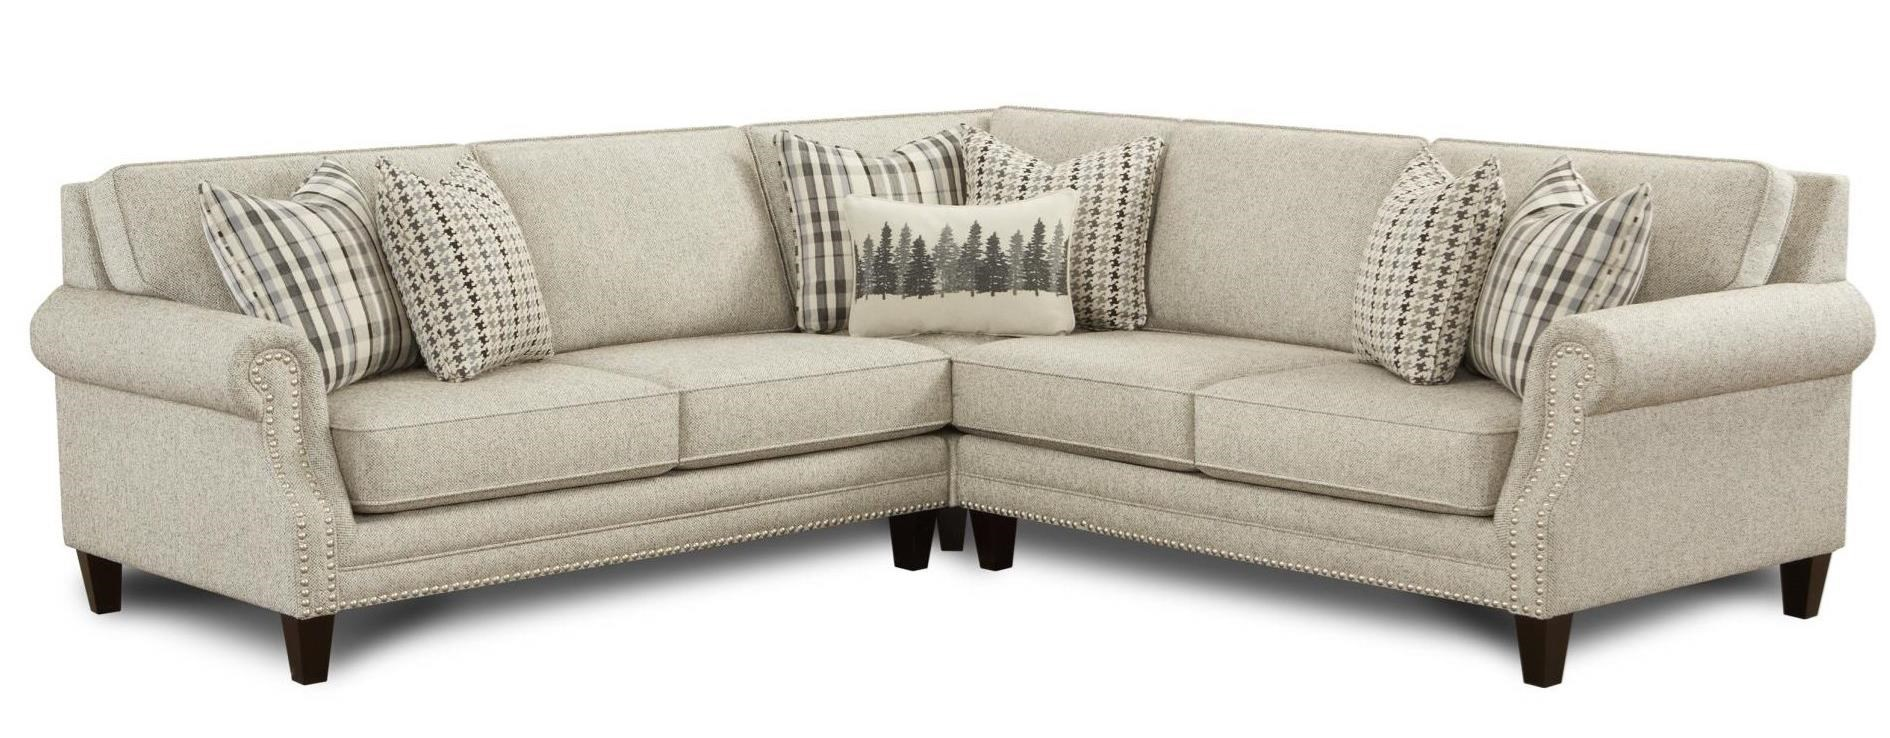 2530 4-Seat Sectional Sofa by Fusion Furniture at Wilson's Furniture